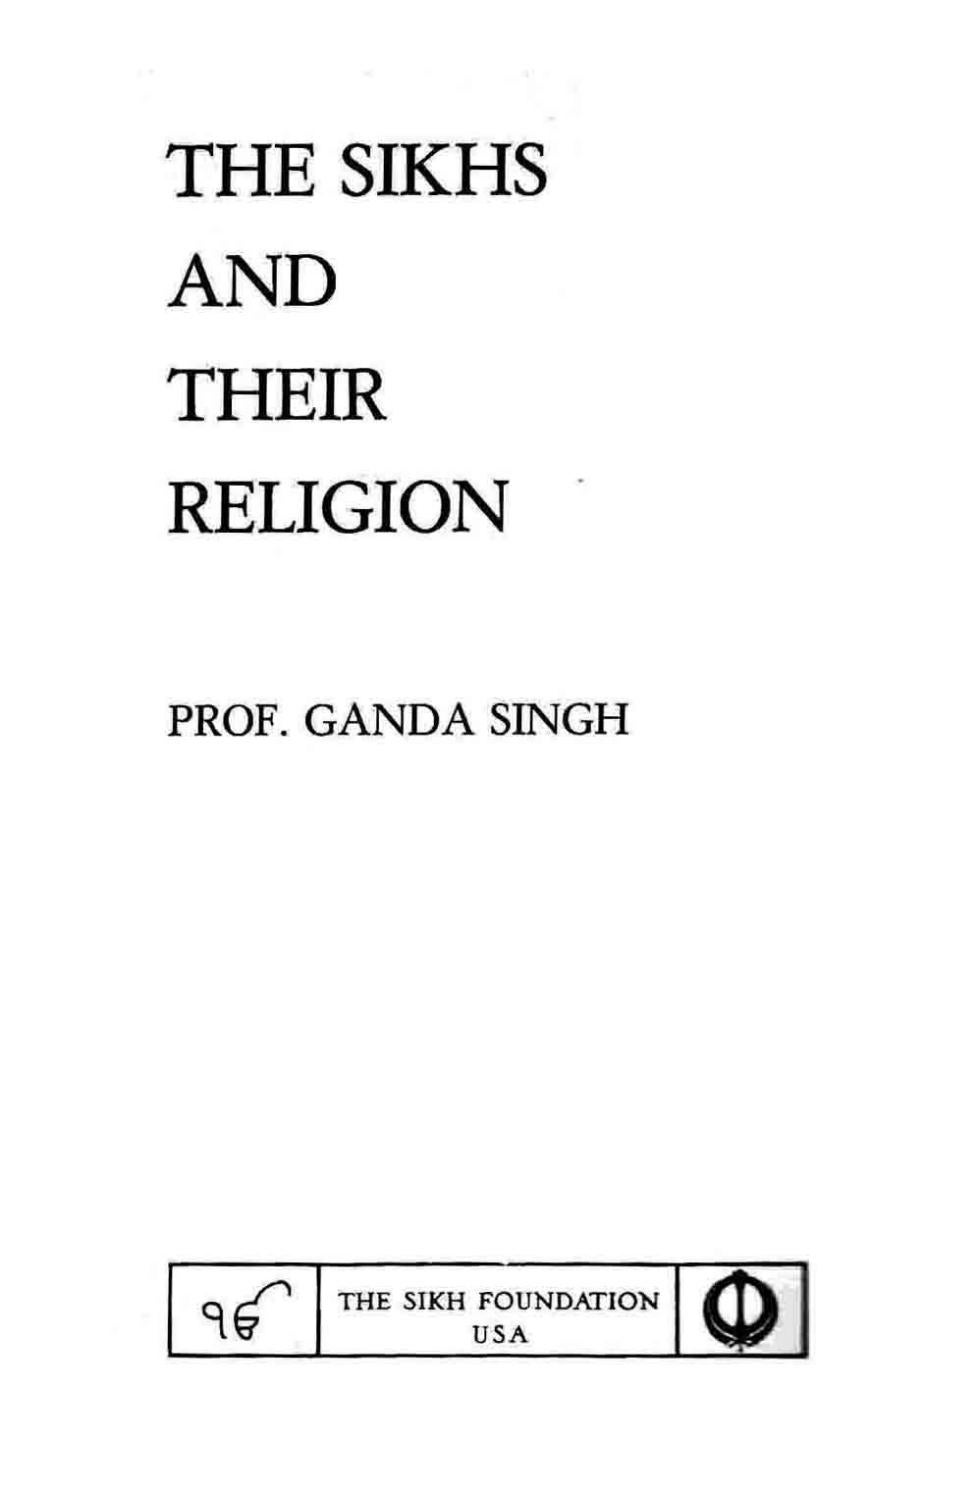 The Sikhs and Their Religion - Dr  Ganda Singh by Sikh